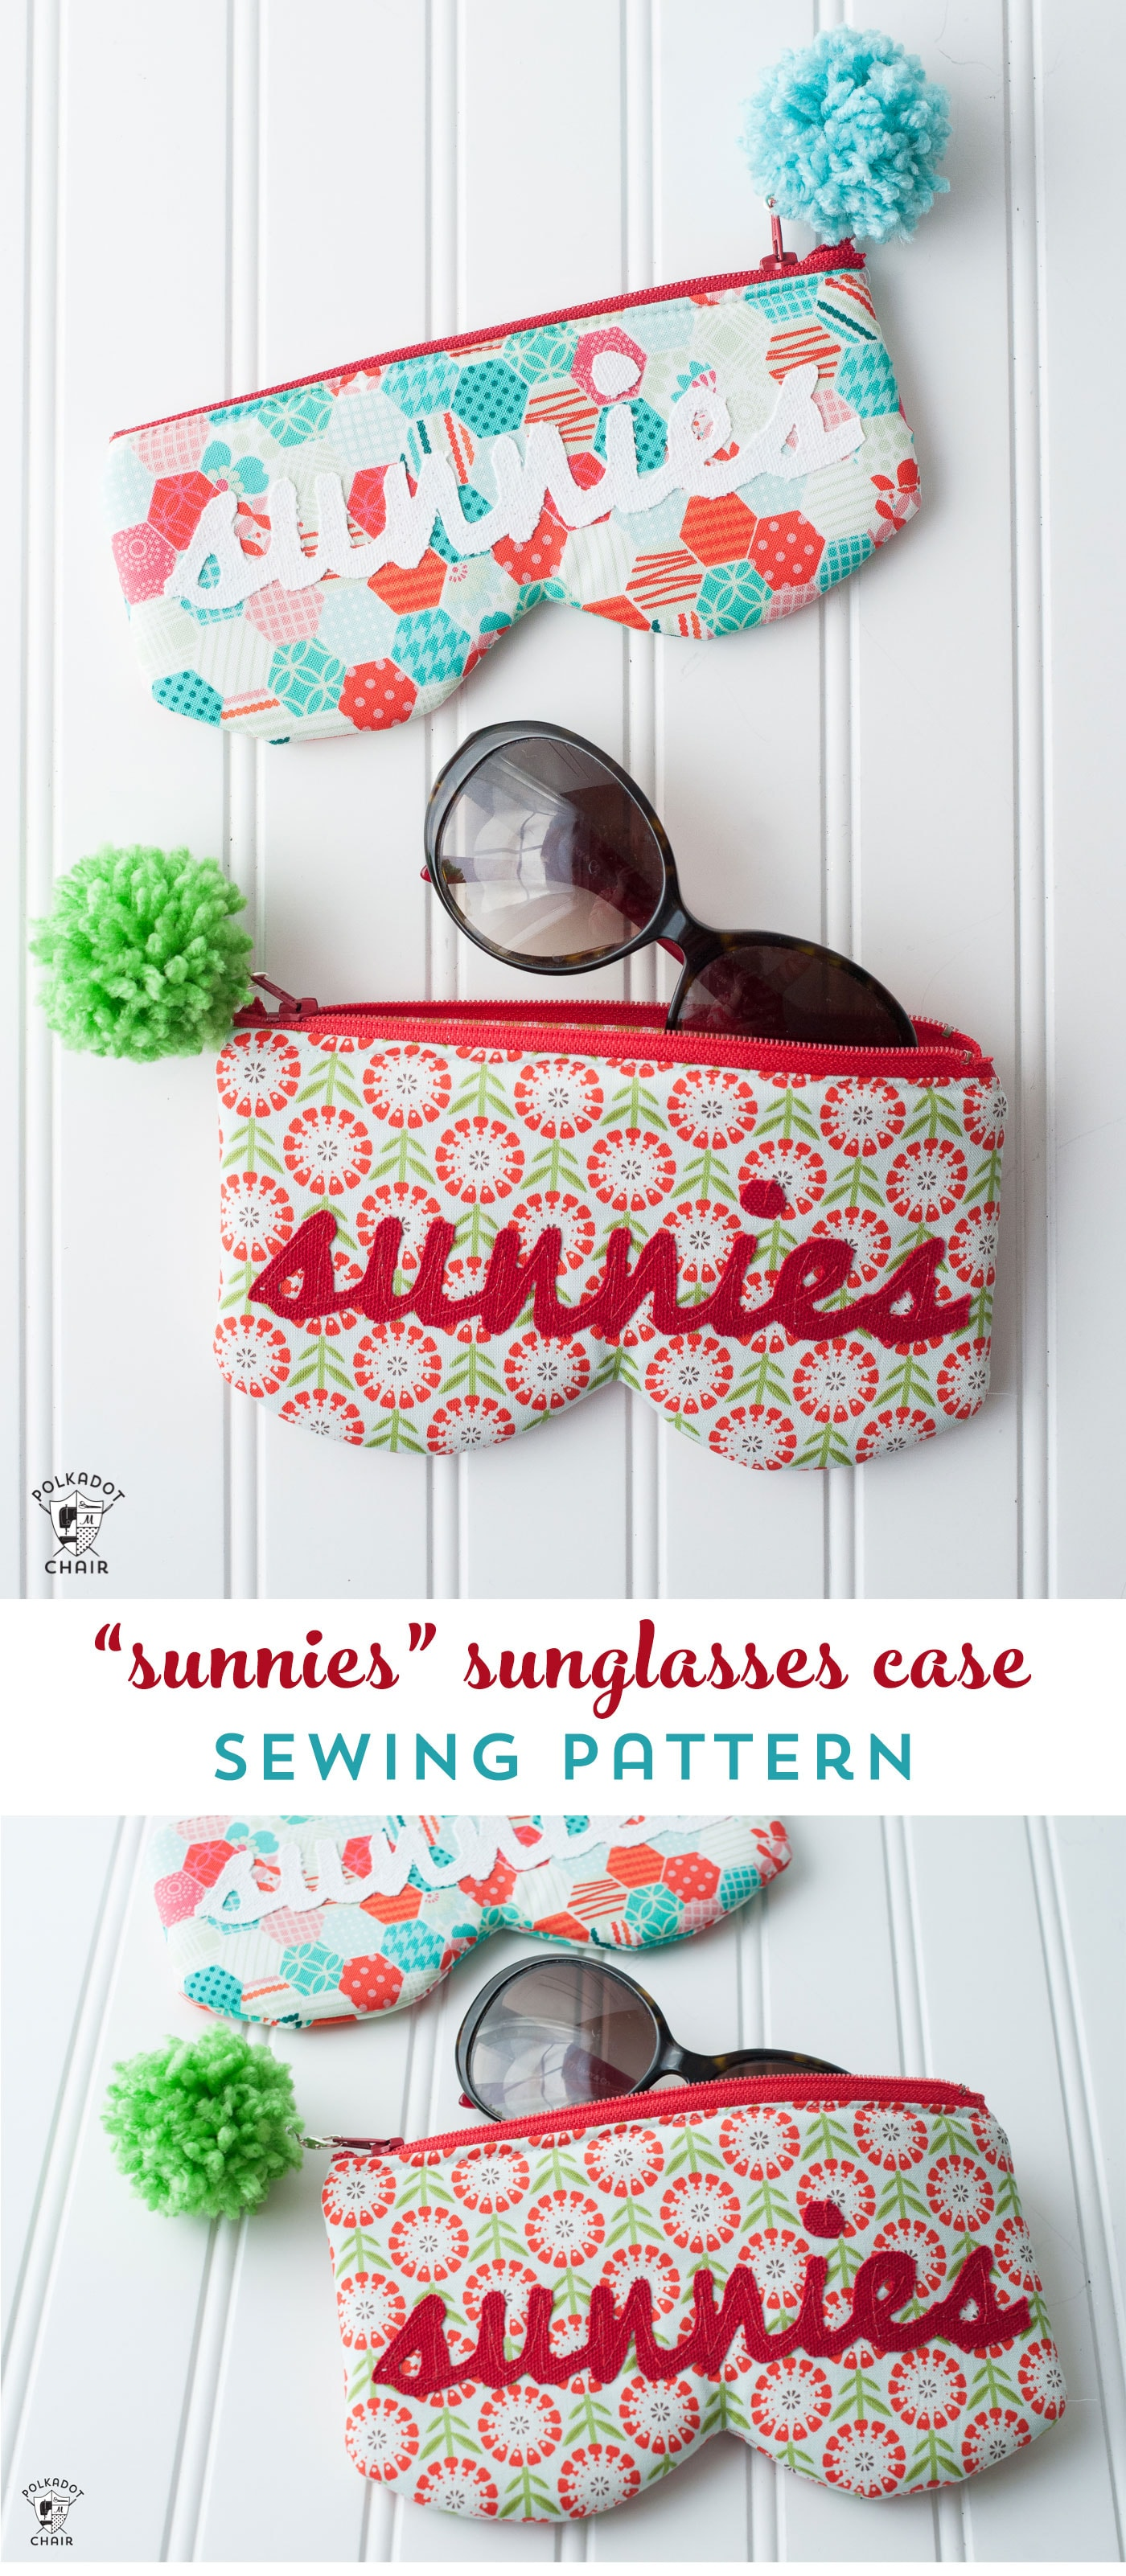 A free sewing pattern for a